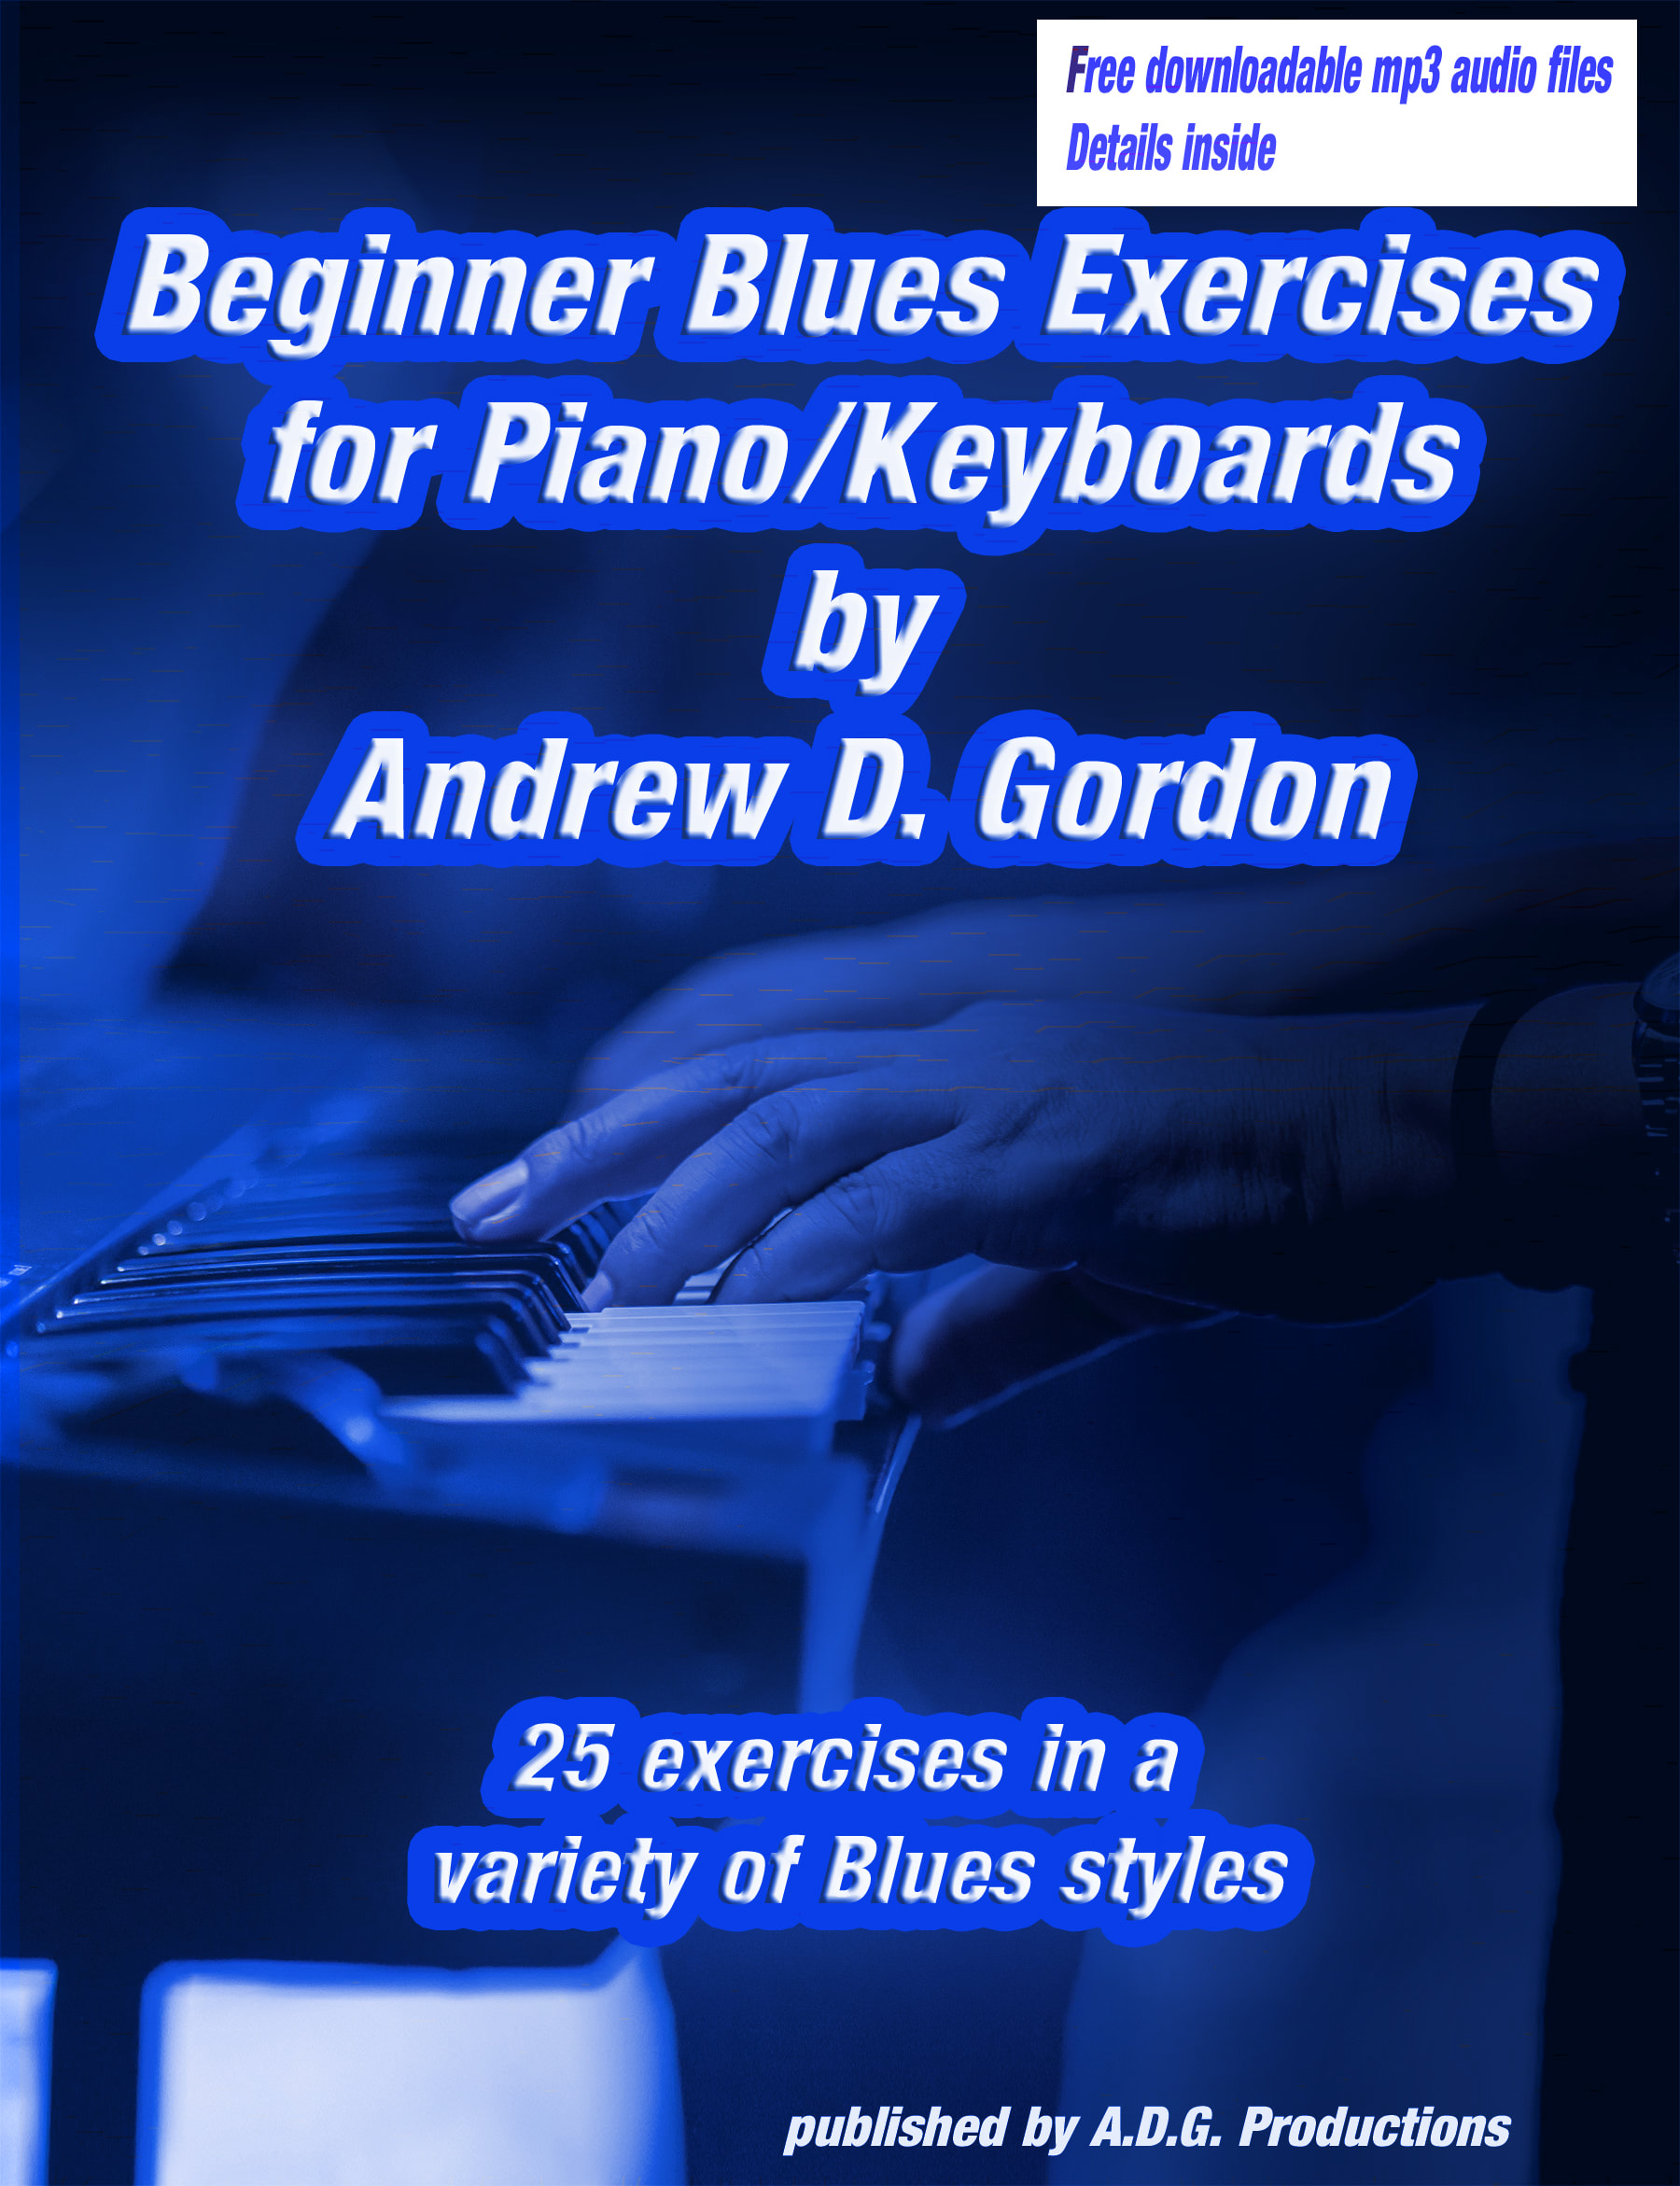 Beginner Blues Exercises for Piano/Keyboards PDF/downloadable audio MP3  files